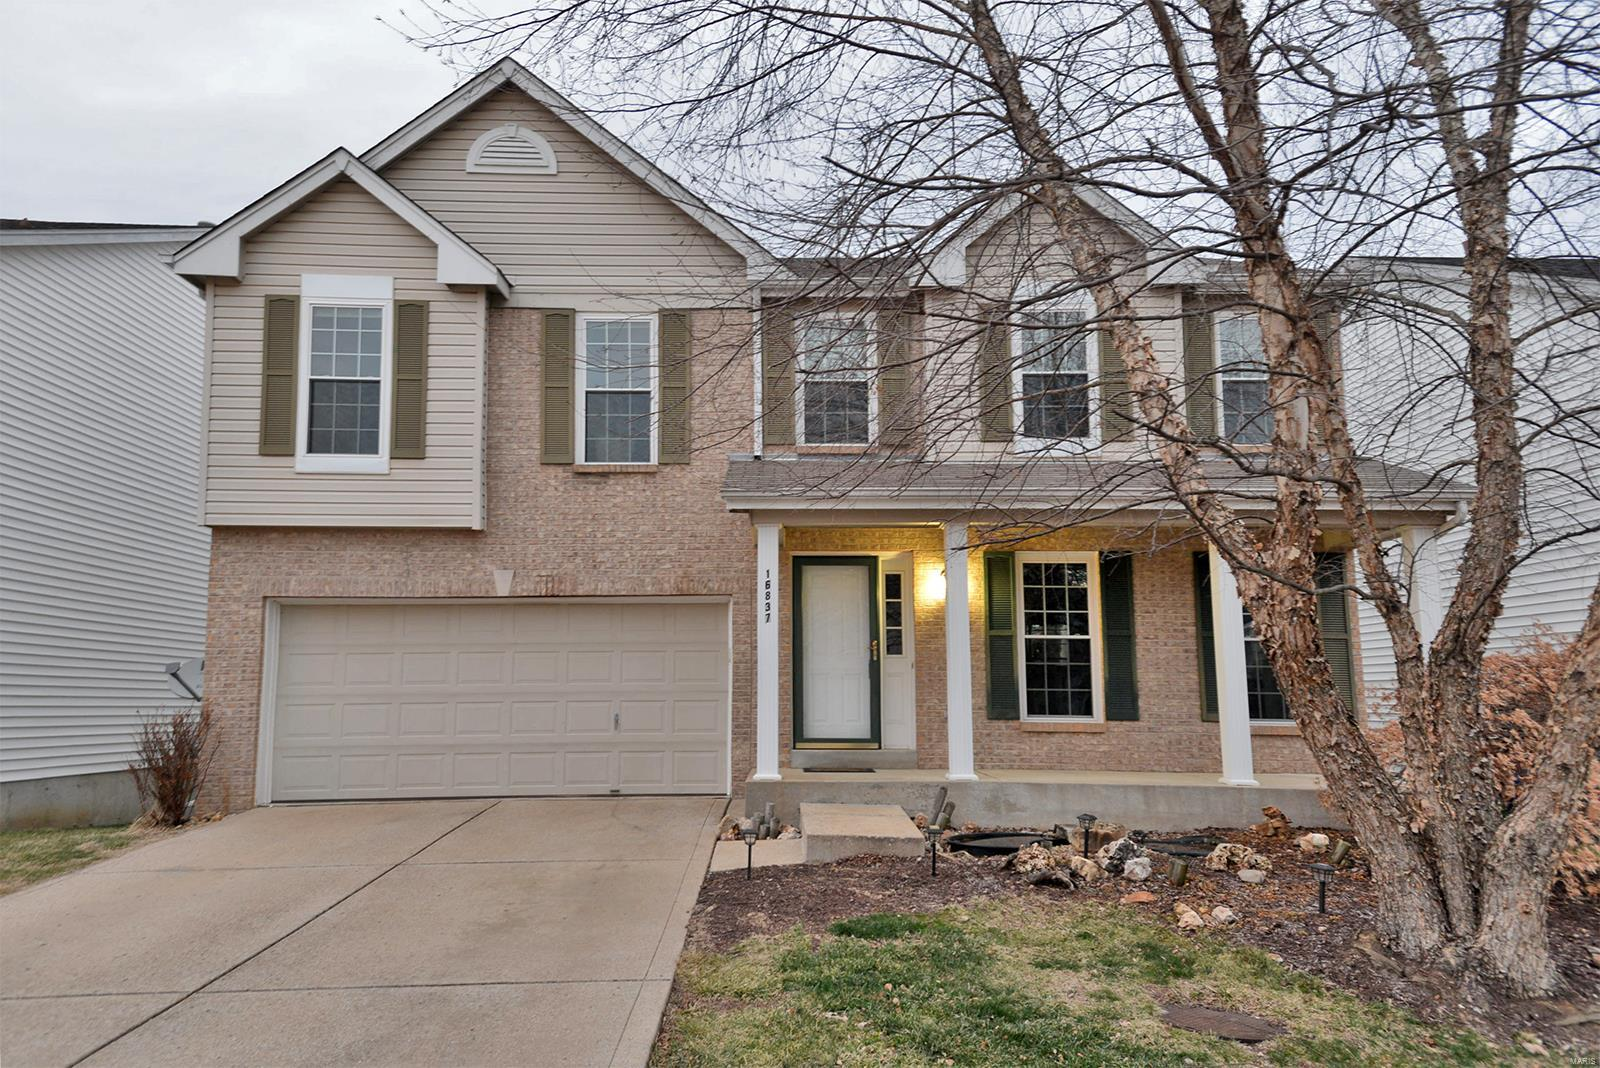 16837 Hickory Trails, Wildwood, MO 63011